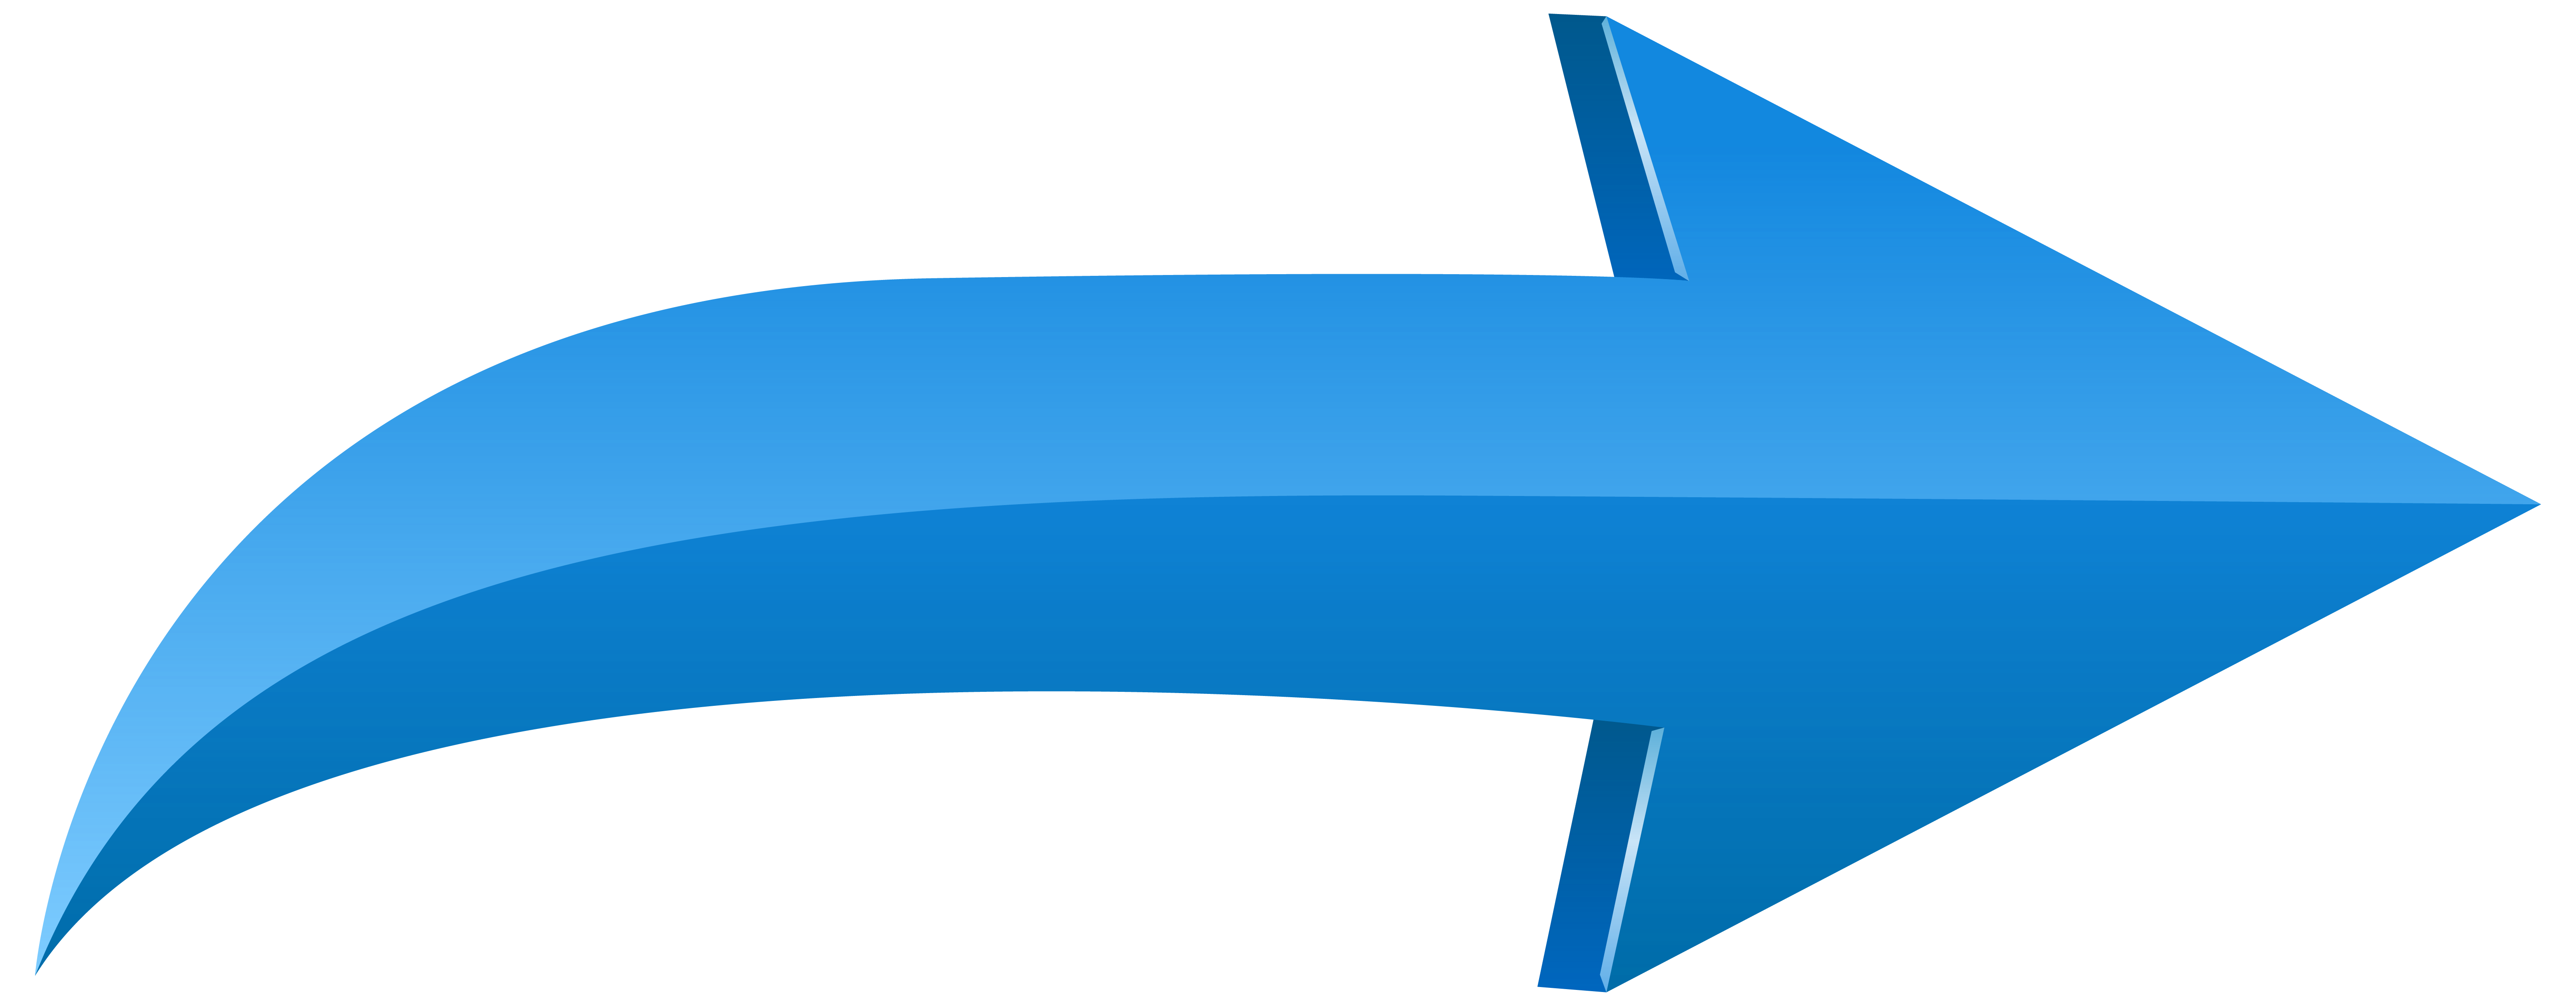 Clipart arrows. Arrow left blue png